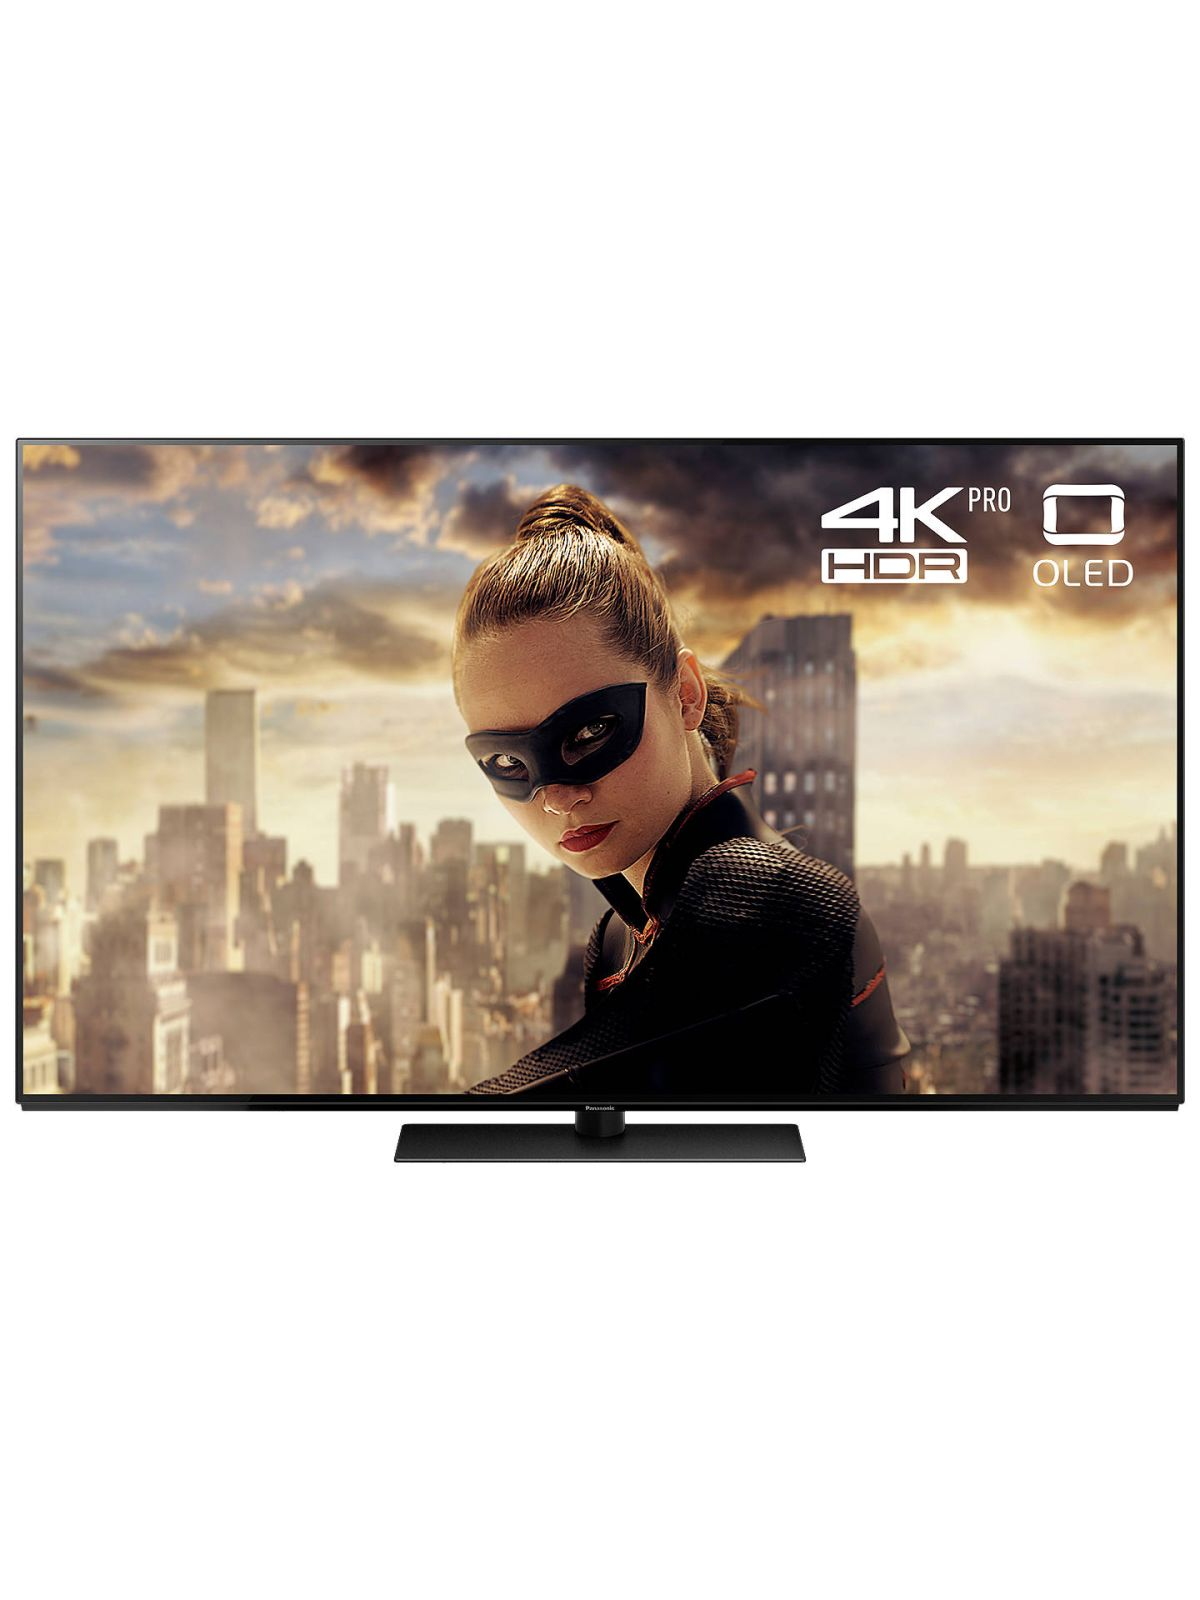 ab3fa9c803ae The best 4K TV deals on Amazon Prime Day 2019 | What Hi-Fi?